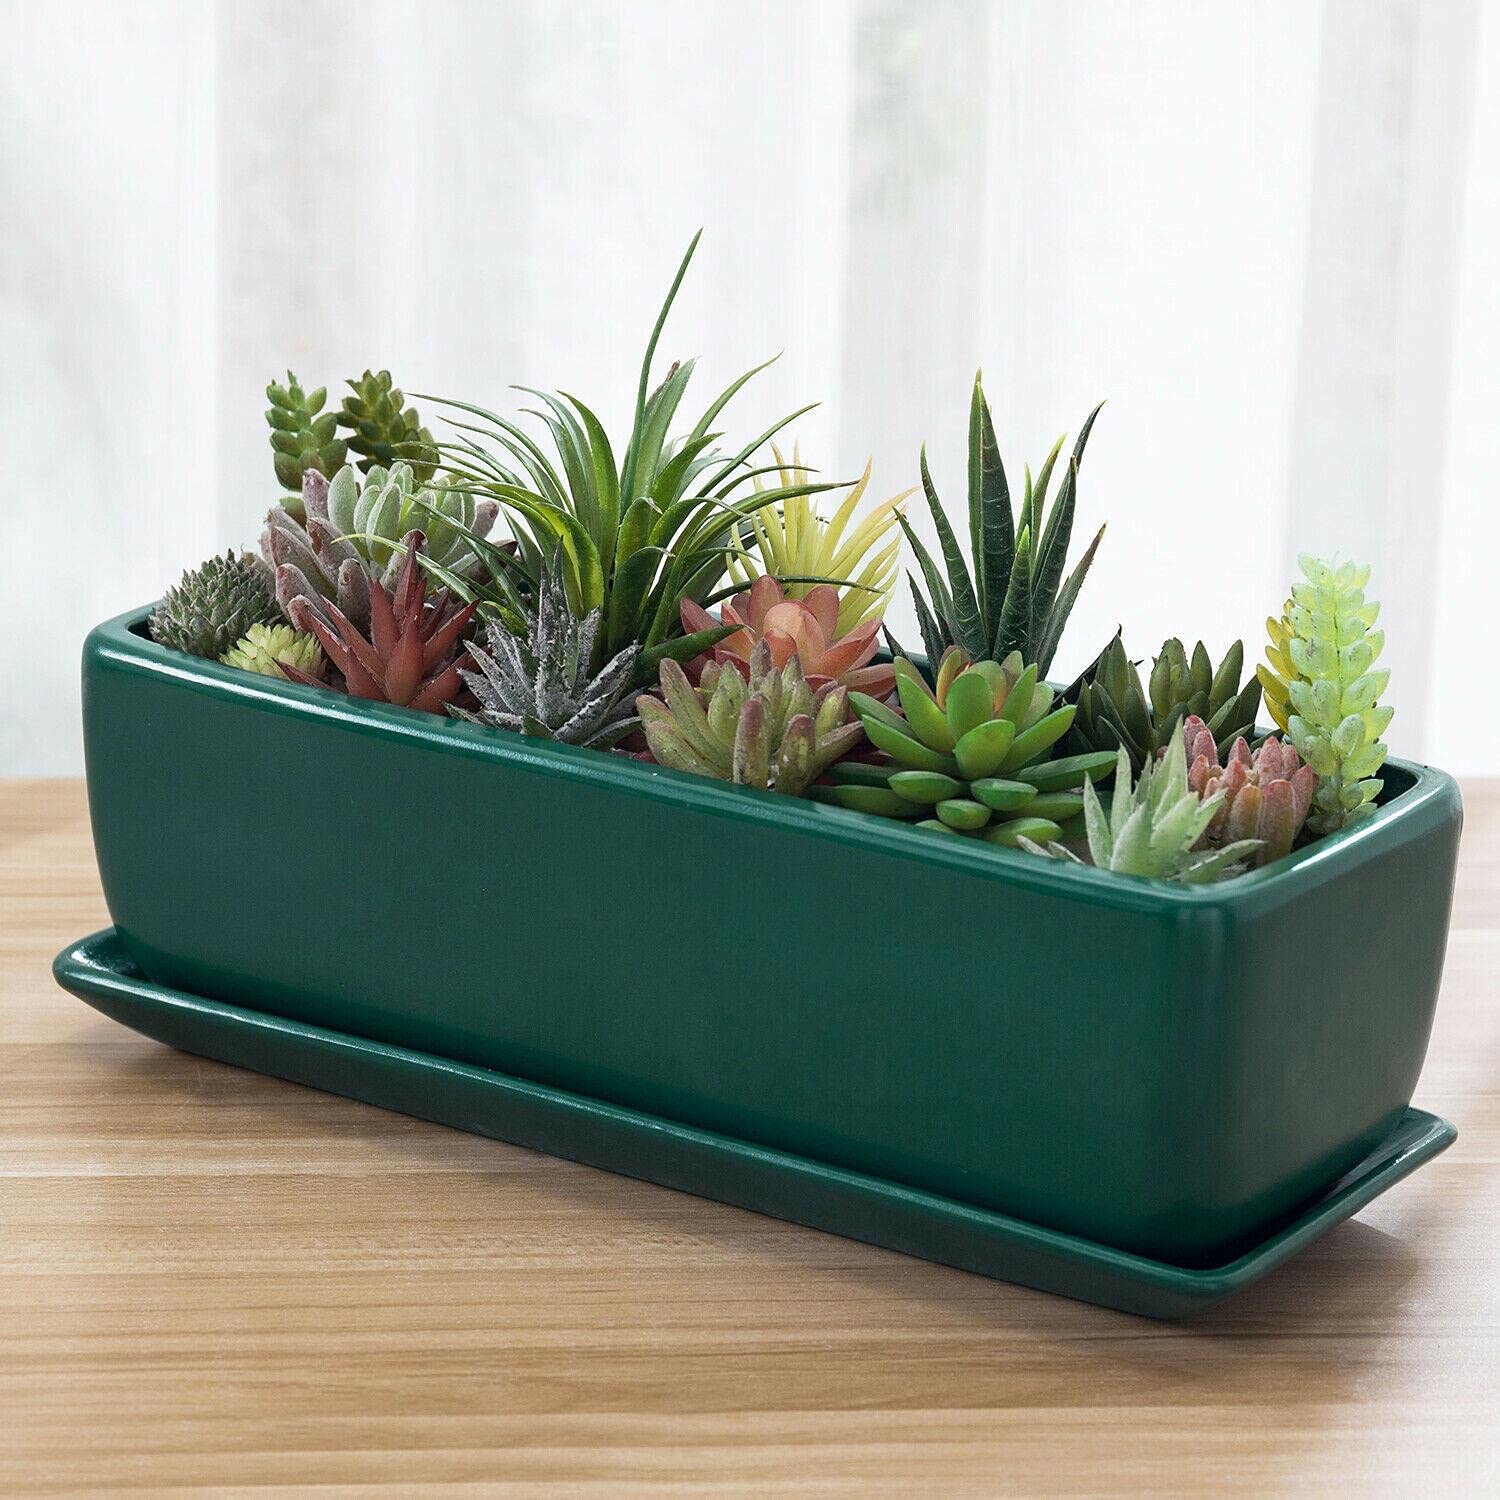 14-inch Modern Turquoise Ceramic Succulent Planter Max 2021 spring and summer new 59% OFF Rectangular W